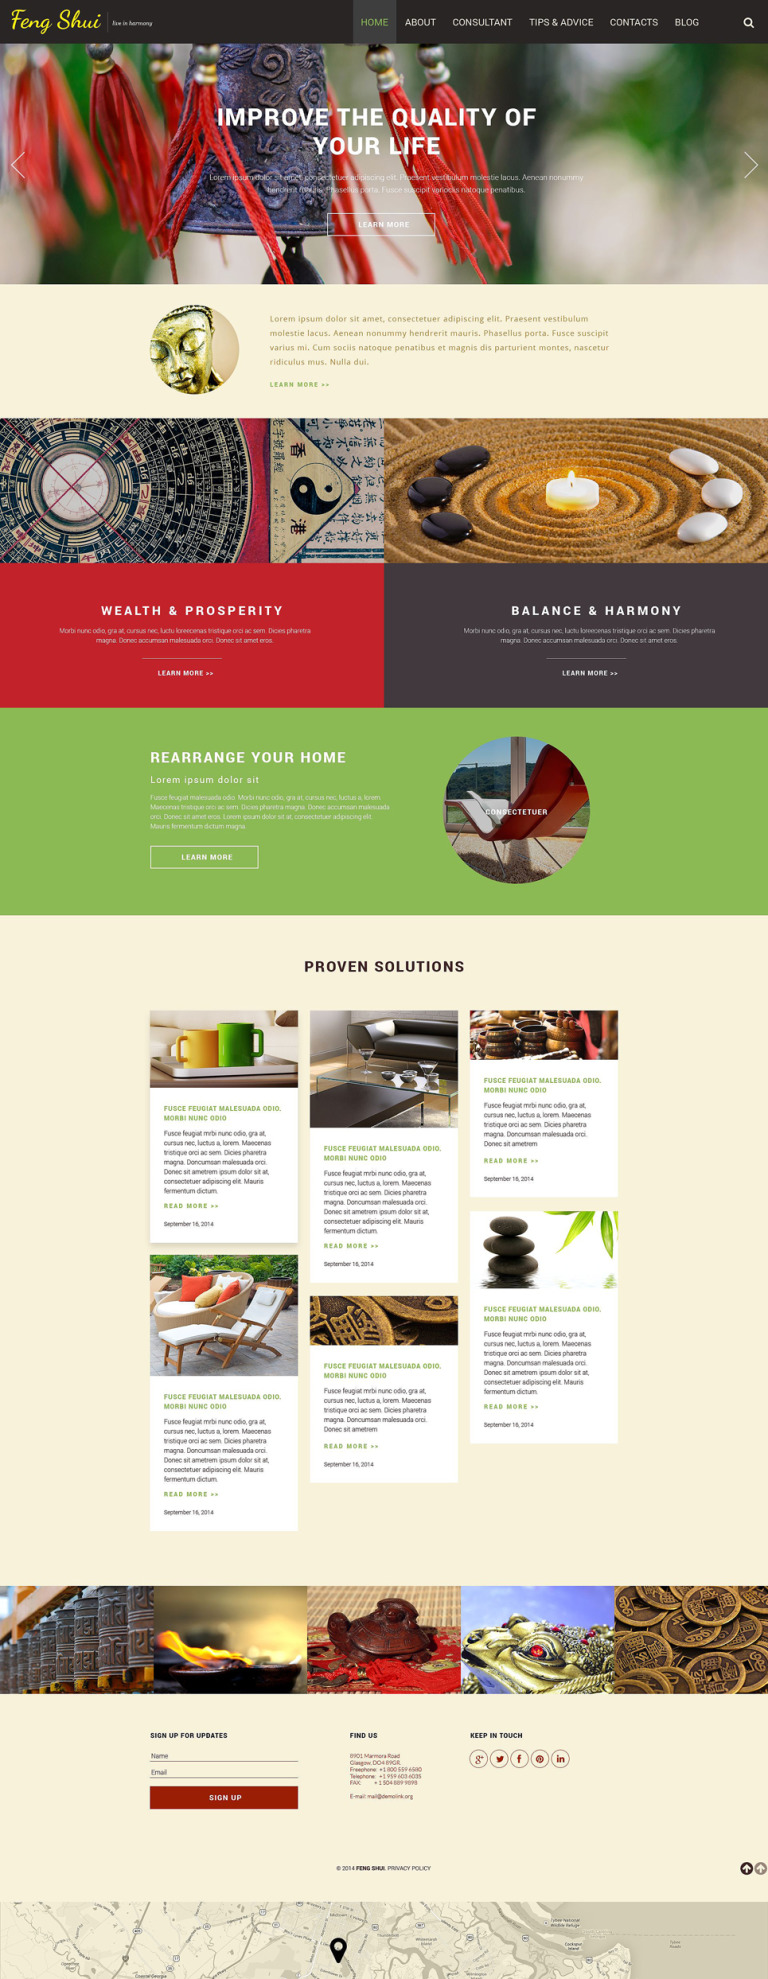 Feng Shui Responsive Website Template New Screenshots BIG